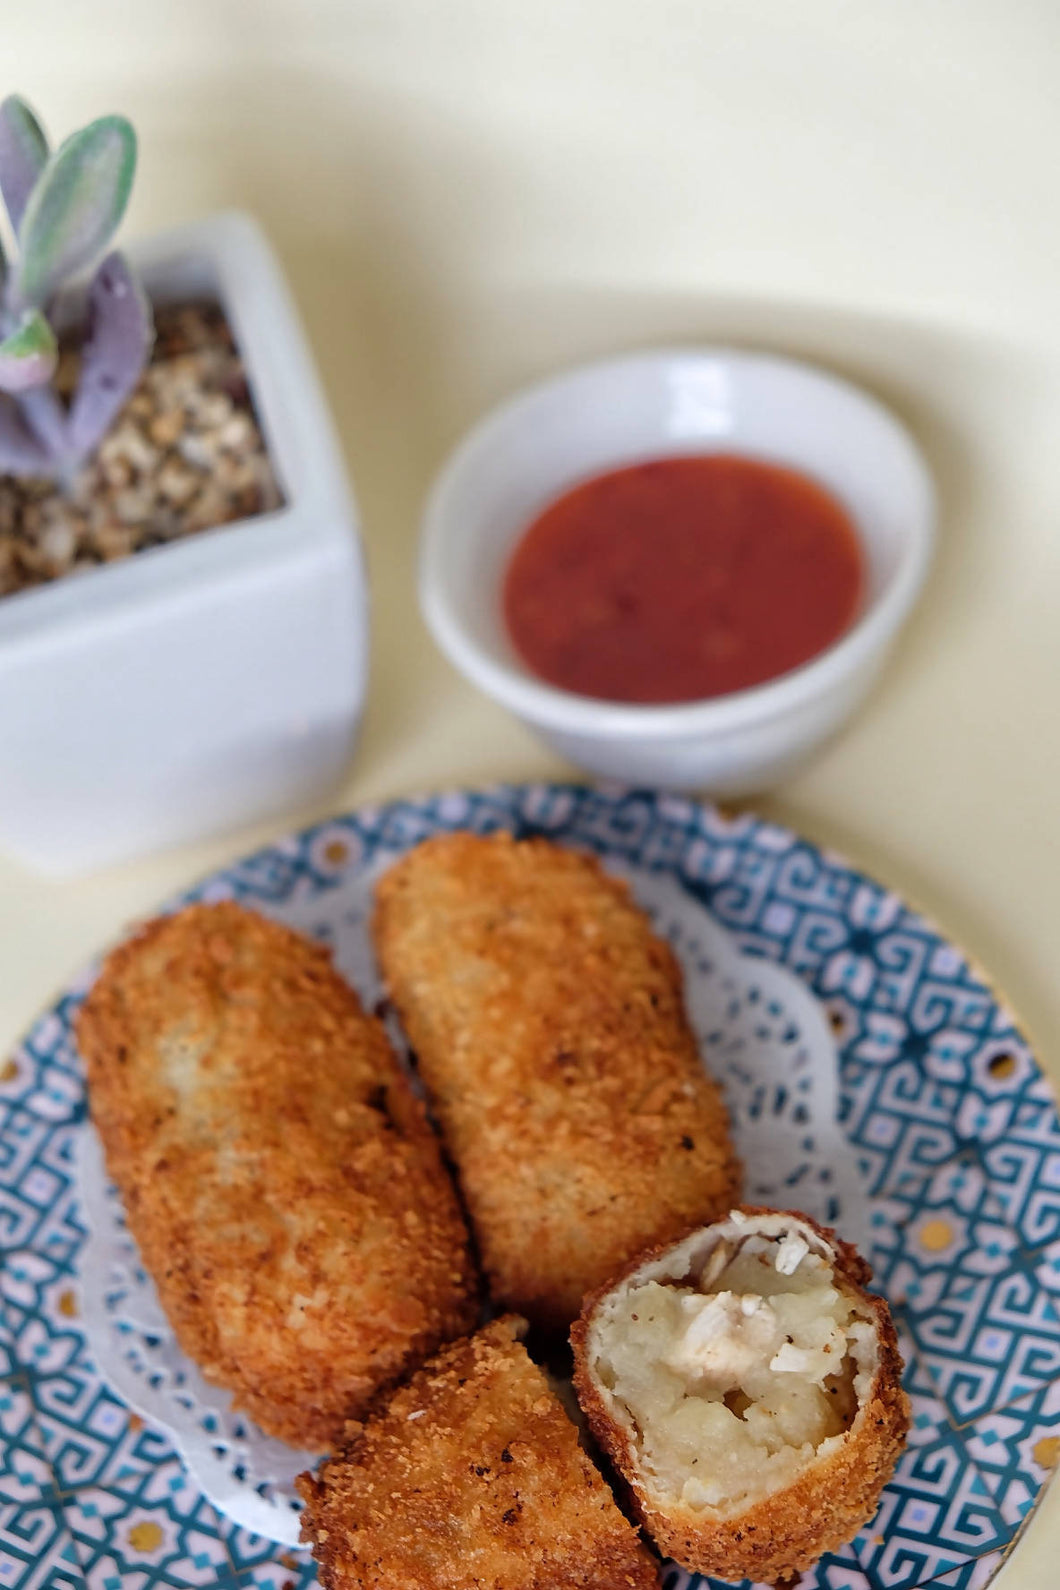 Kroket Ayam Jamur (Potato Croquette with Chicken and Mushroom)